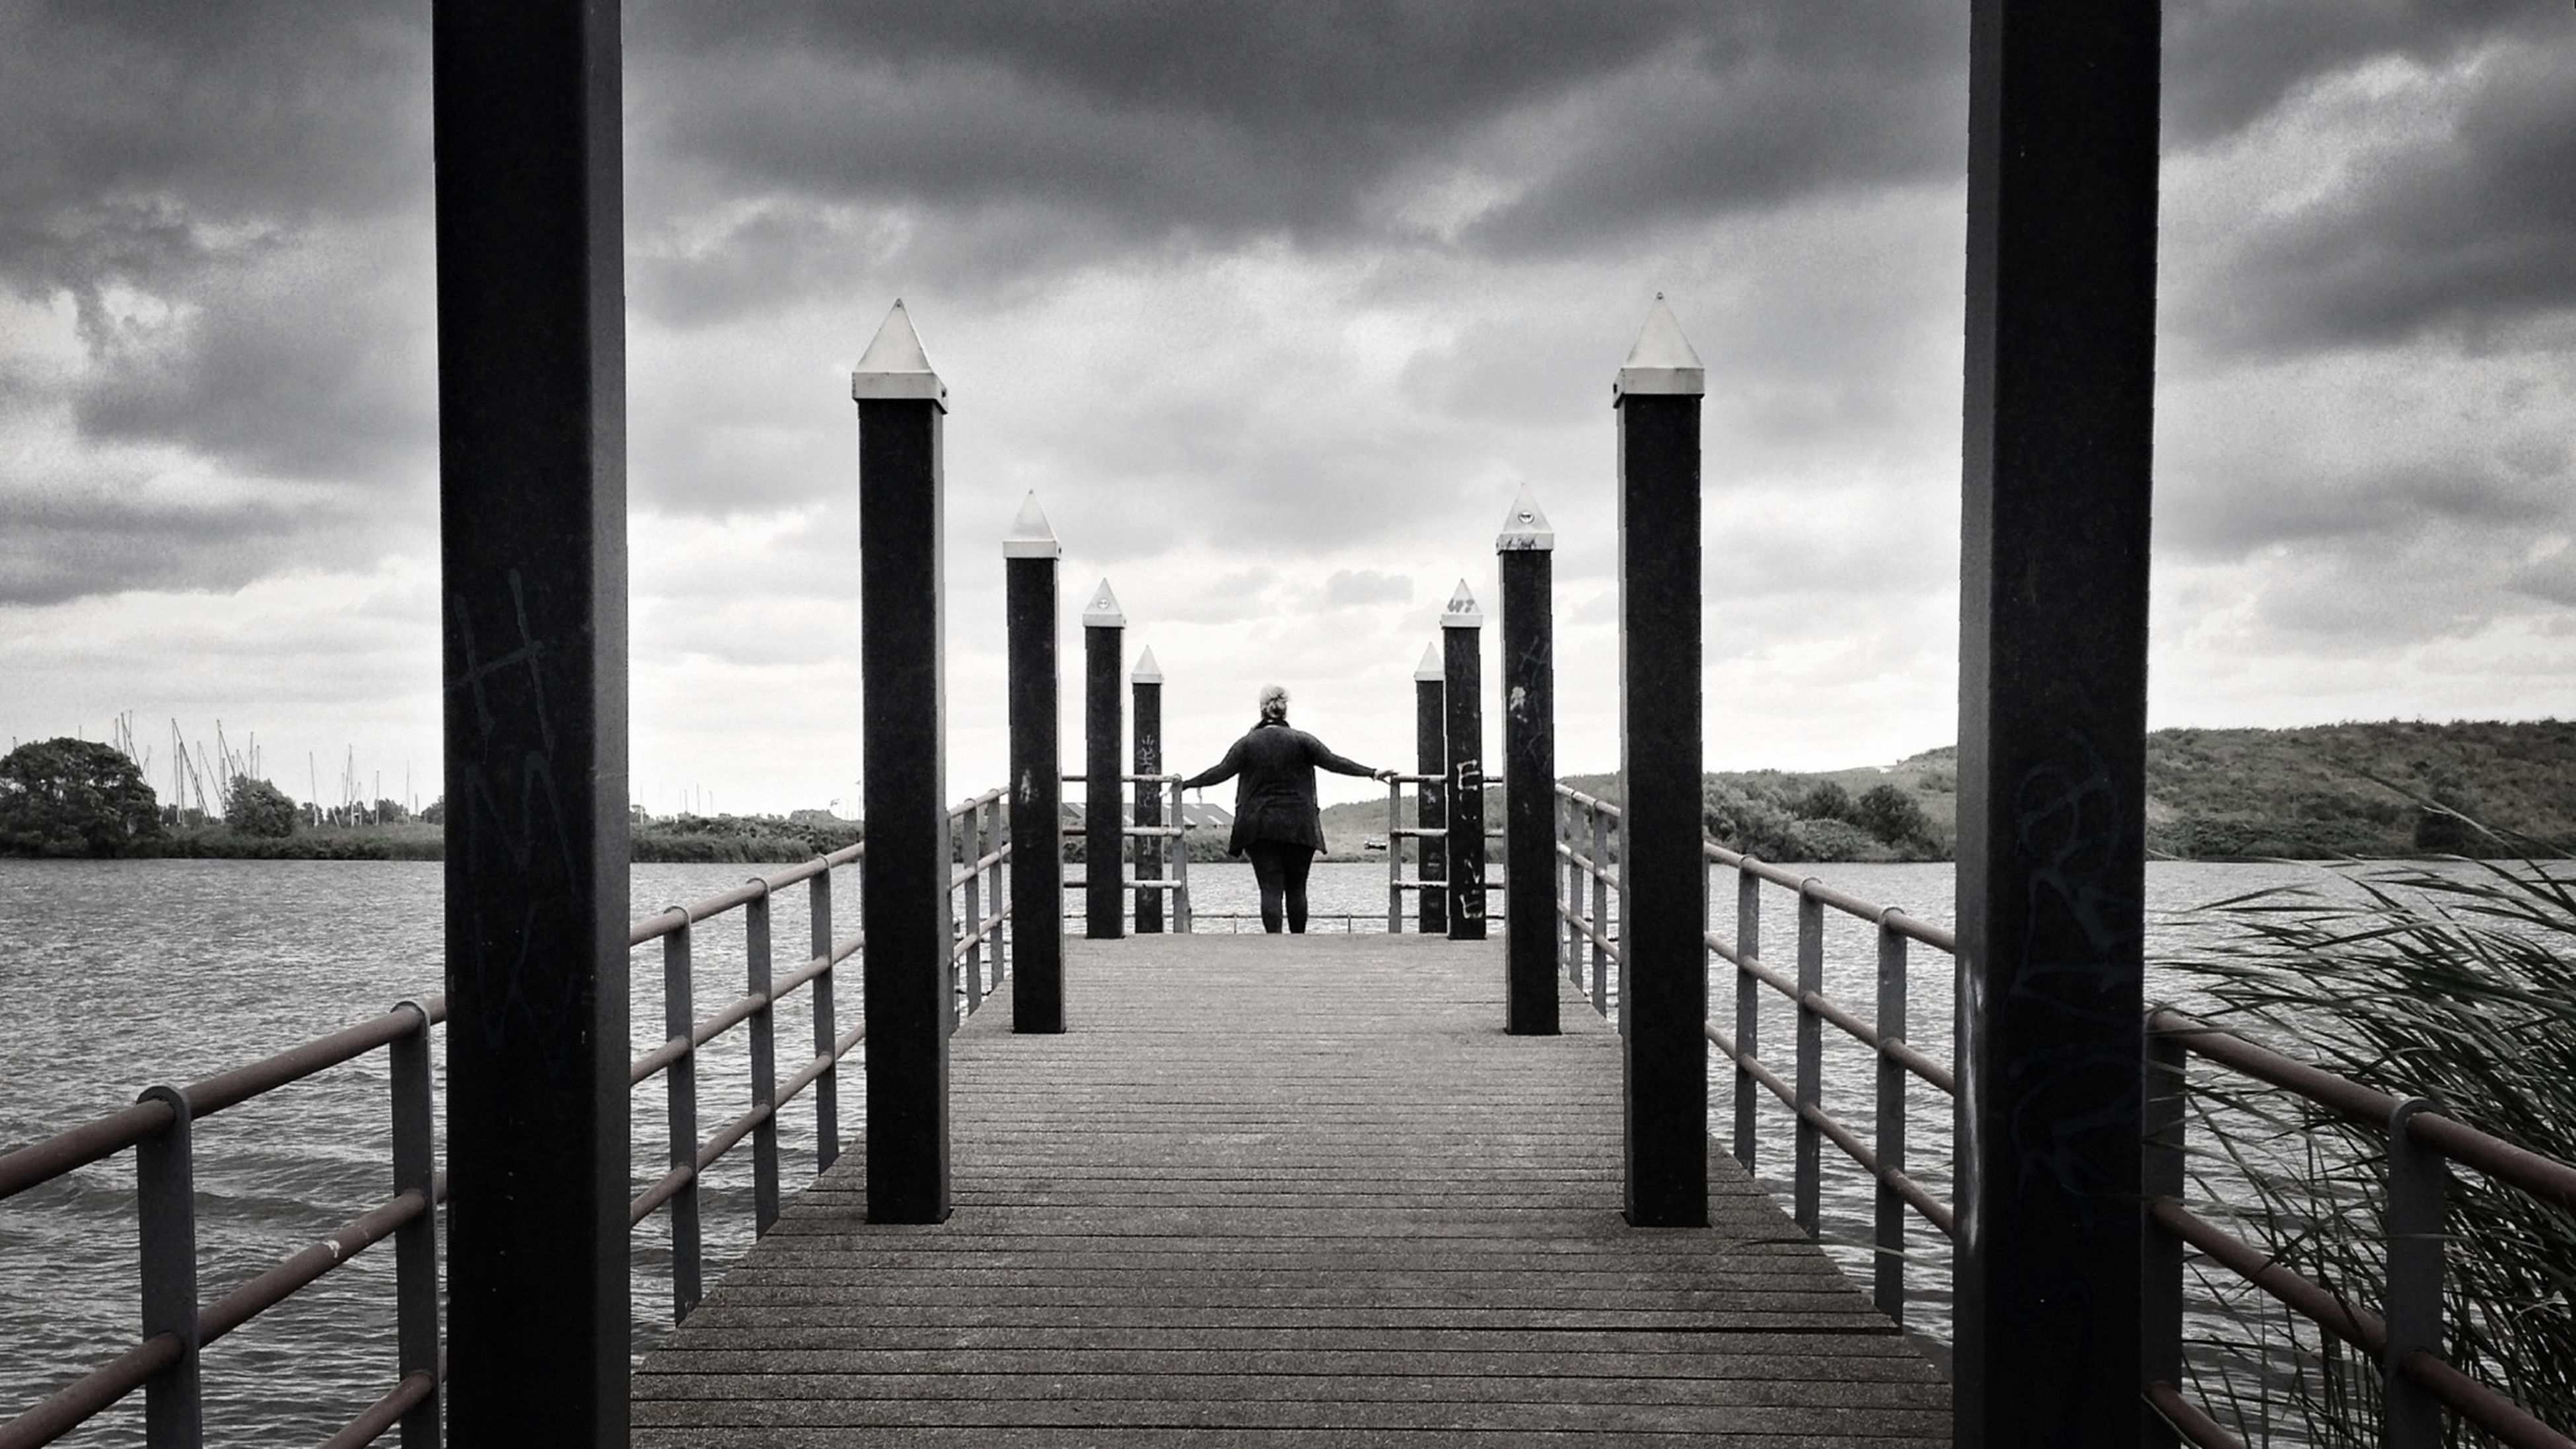 sky, railing, cloud - sky, built structure, rear view, the way forward, men, architecture, sea, water, pier, cloud, lifestyles, walking, full length, cloudy, leisure activity, person